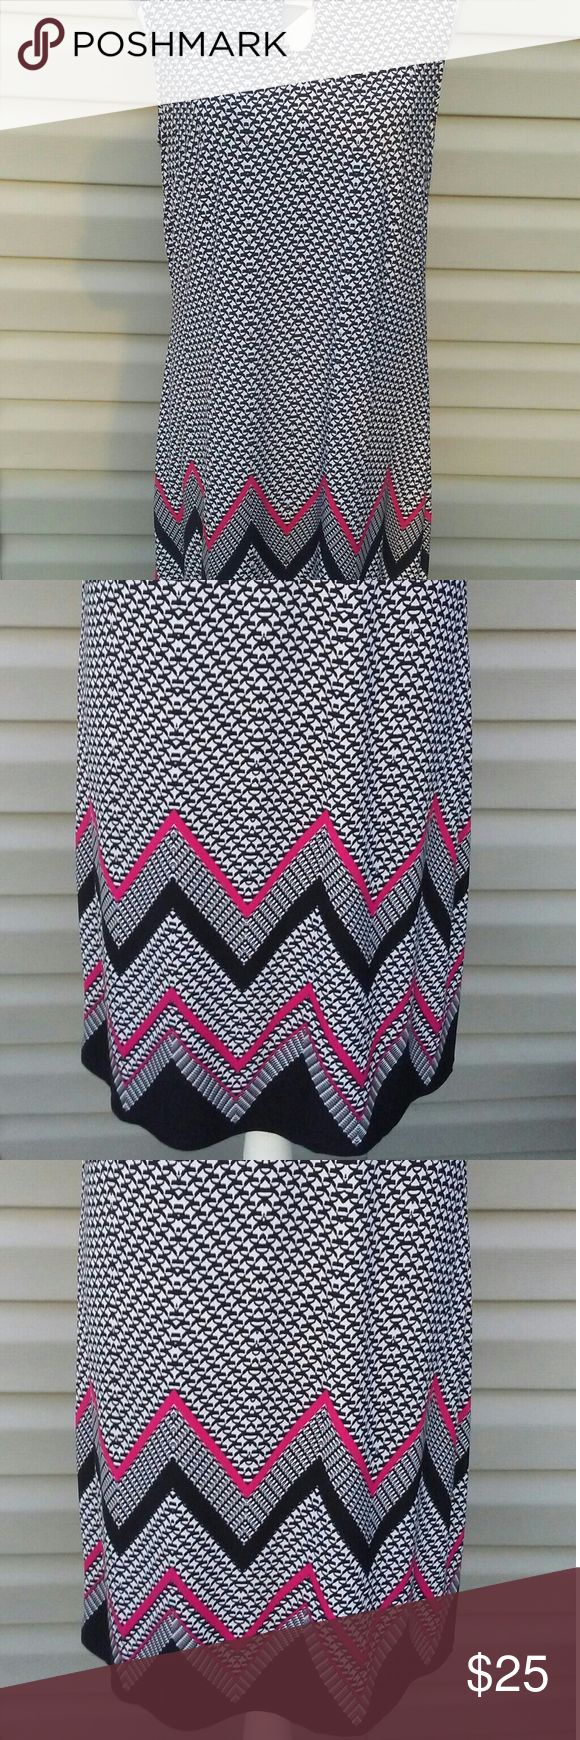 """🆕New Direction Dress Brand New!!! Black and White Pattern!! Chevron Pattern around the bottom!! Gorgeous Dress!! Petite Xlarge  Measurements  36"""" shoulder to bottom  18"""" armpit to armpit   Materials  95% Polyester  5% Spandex new directions Dresses"""